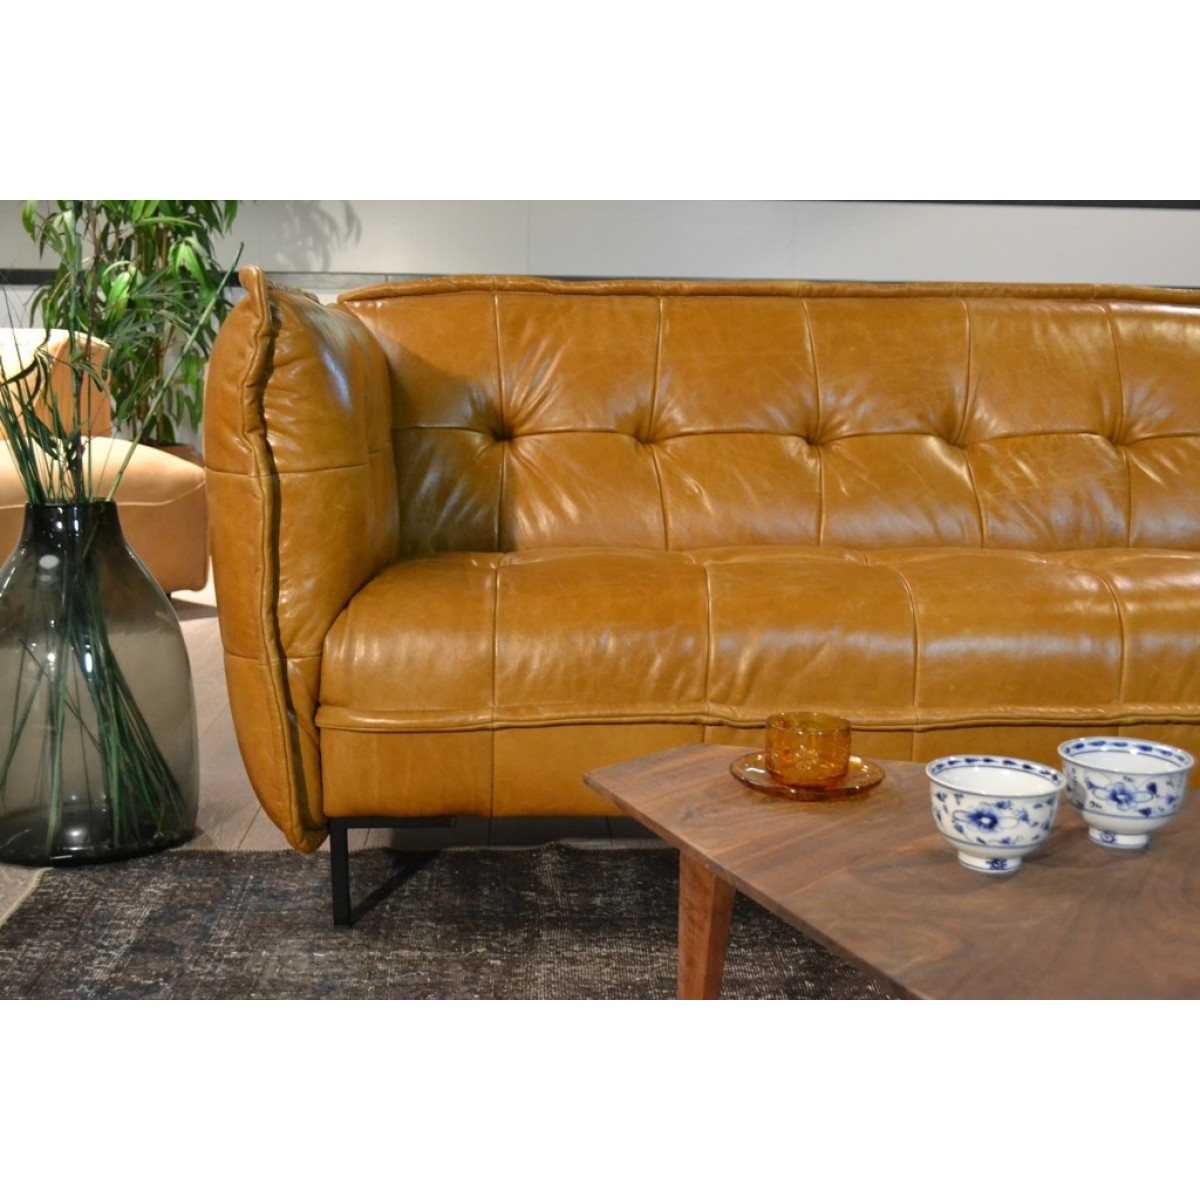 bank_slimm_jim_patch_work_leder_leer_da_silva_tabacco_cognac_tom_club_easy_sofa_sfeerdetail